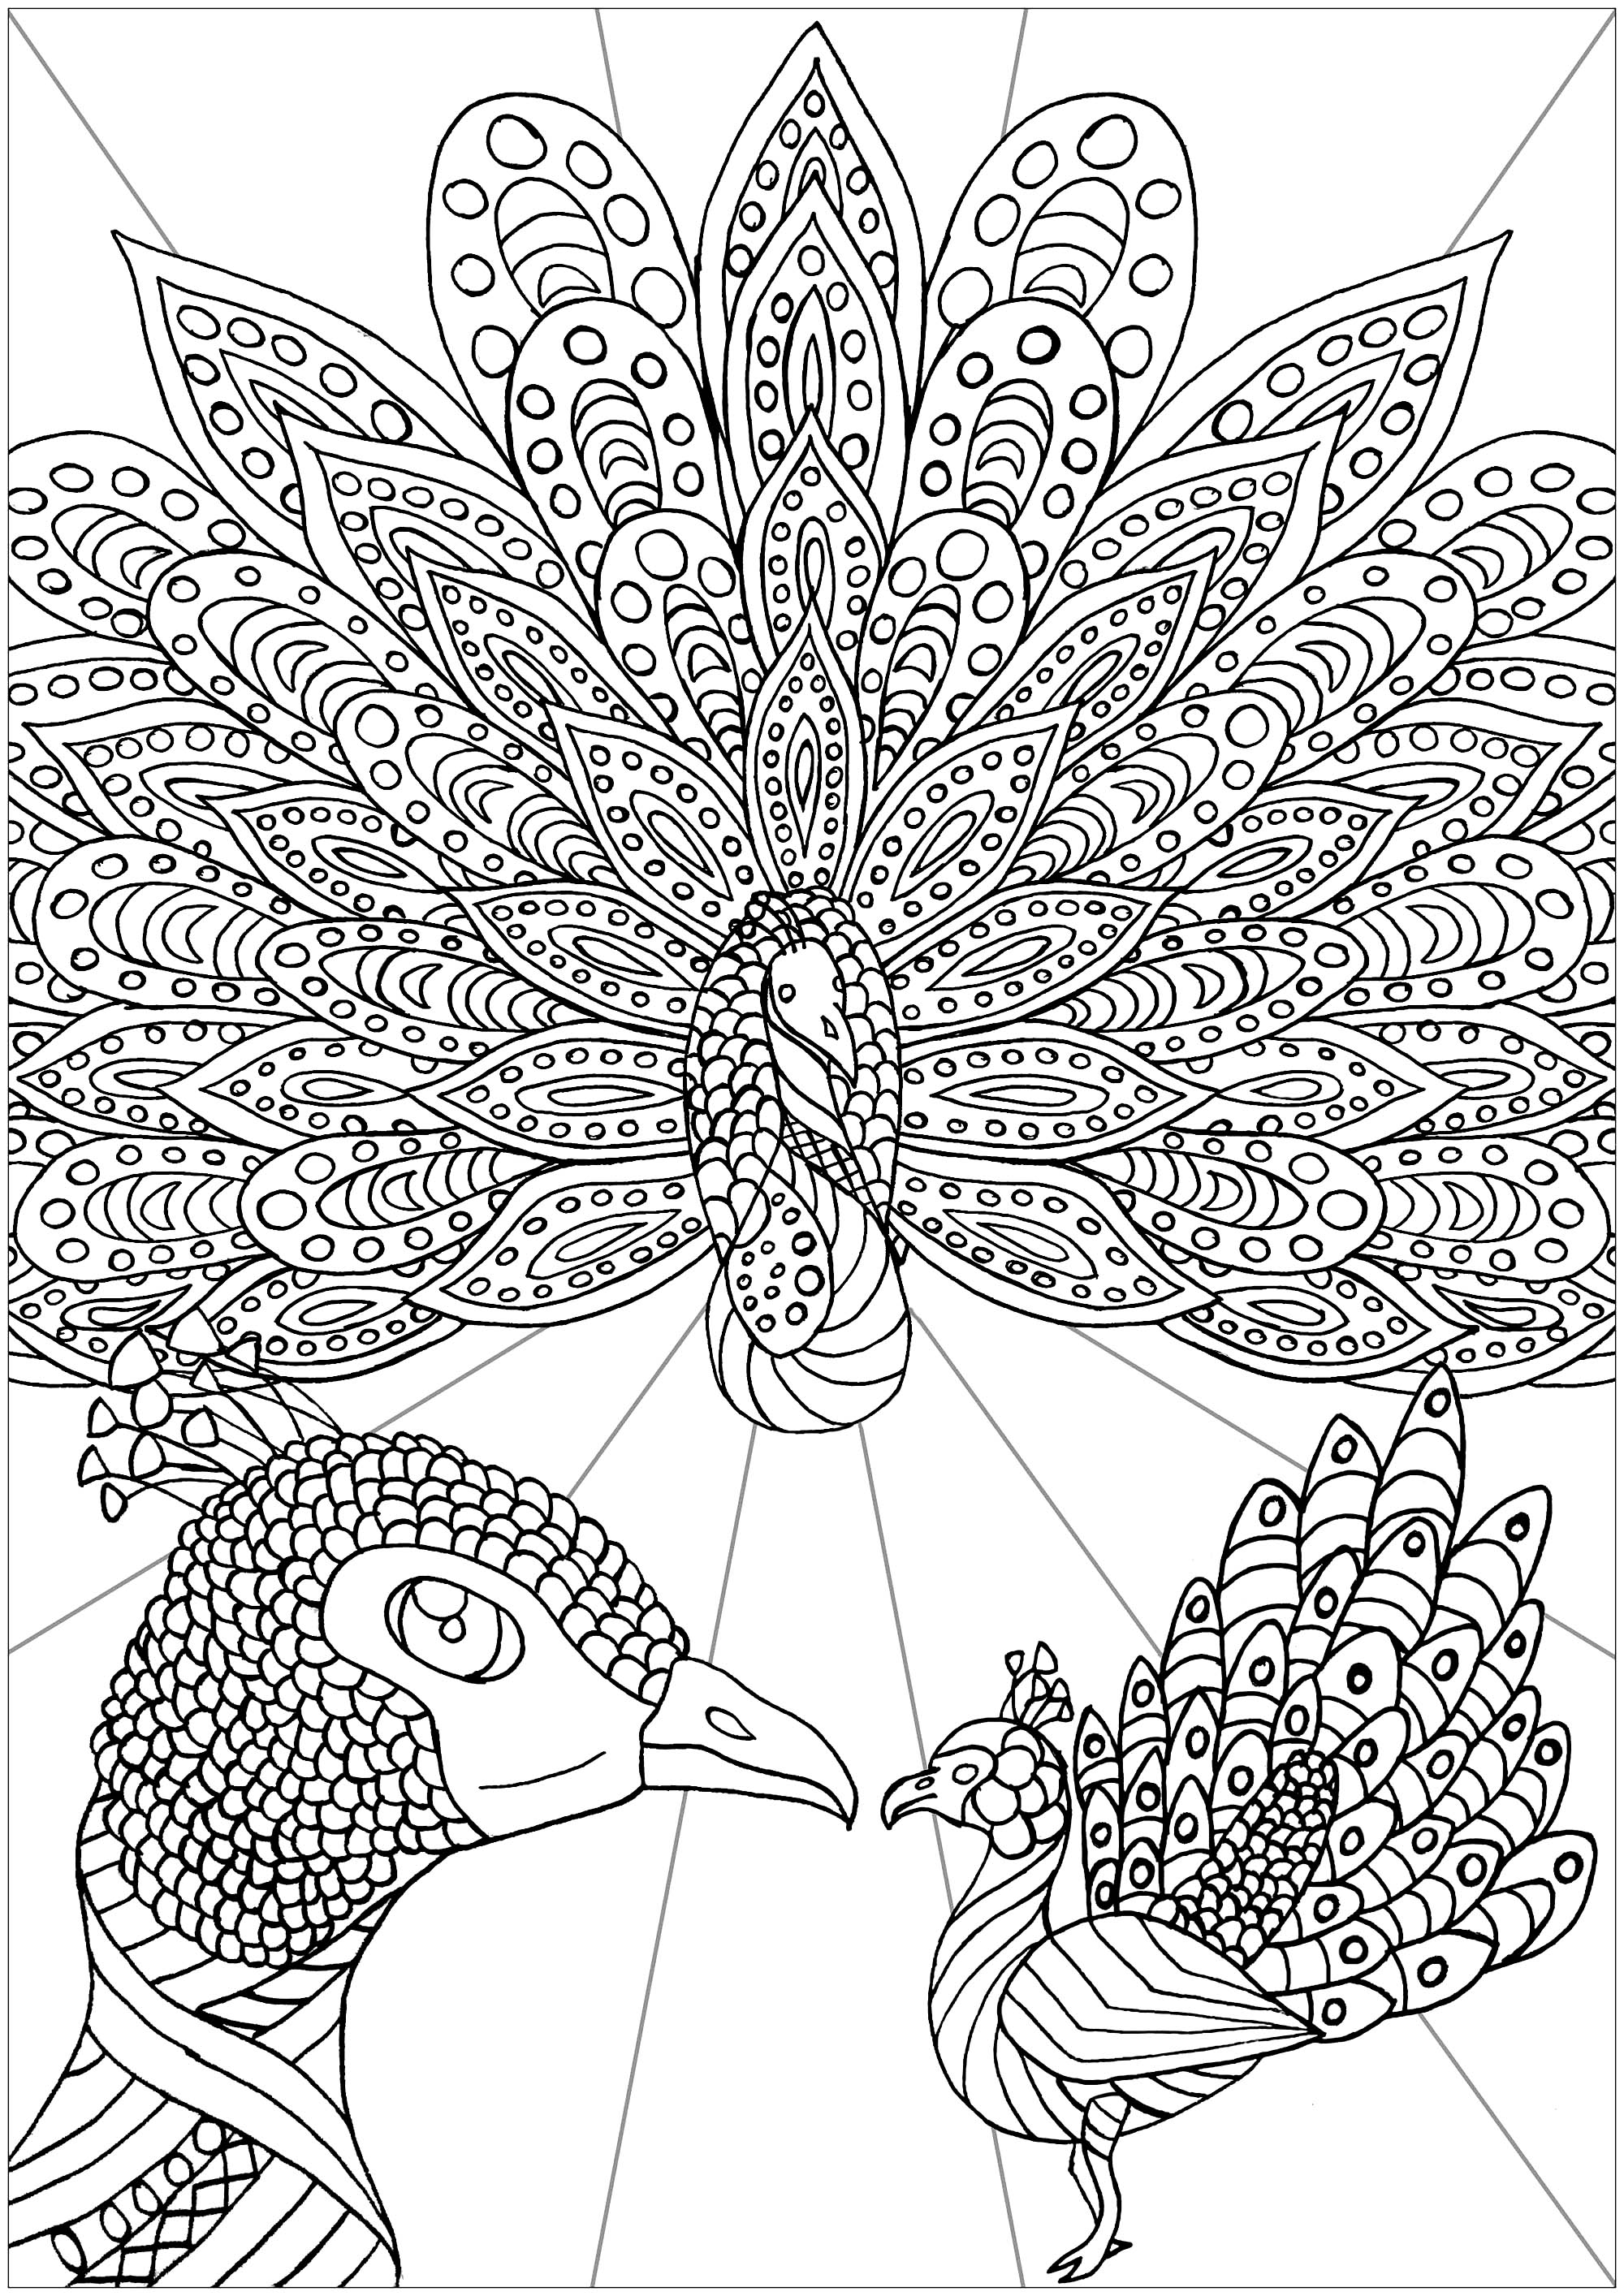 coloring peacock color page printable peacock coloring pages for kids color peacock page coloring